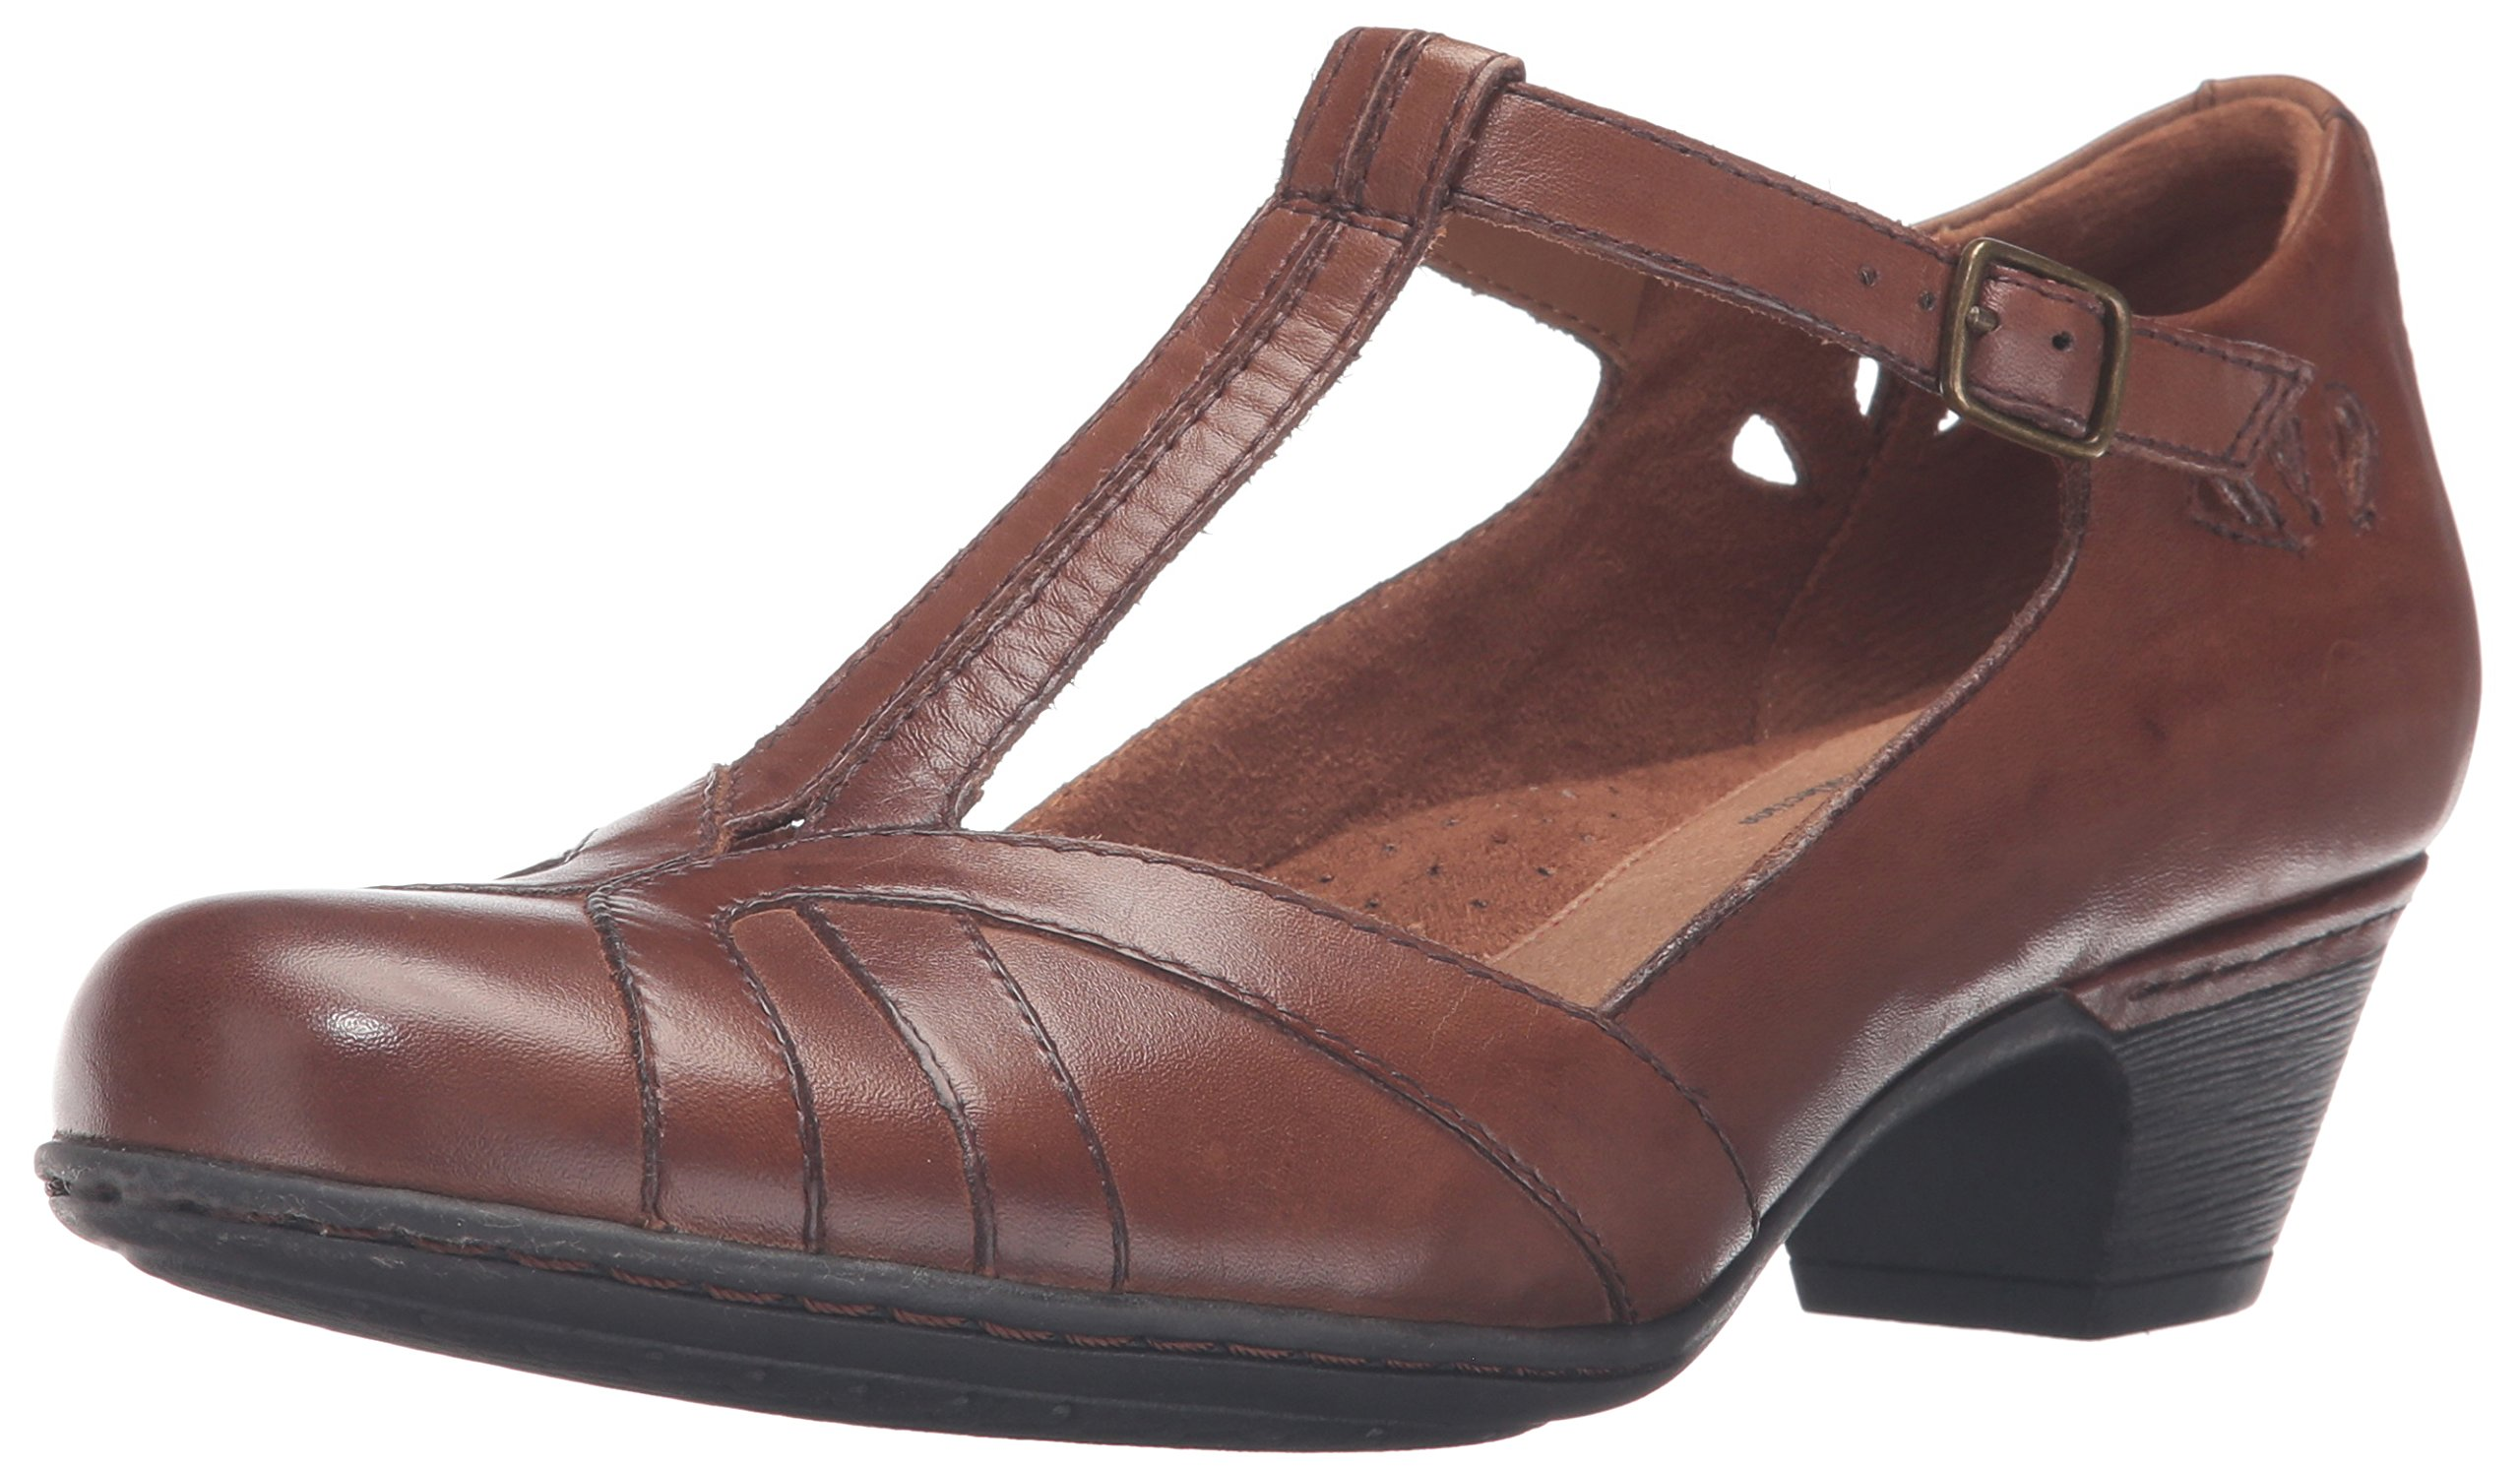 Cobb Hill Rockport Women's Angelina Dress Pump, Almond, 7.5 N US